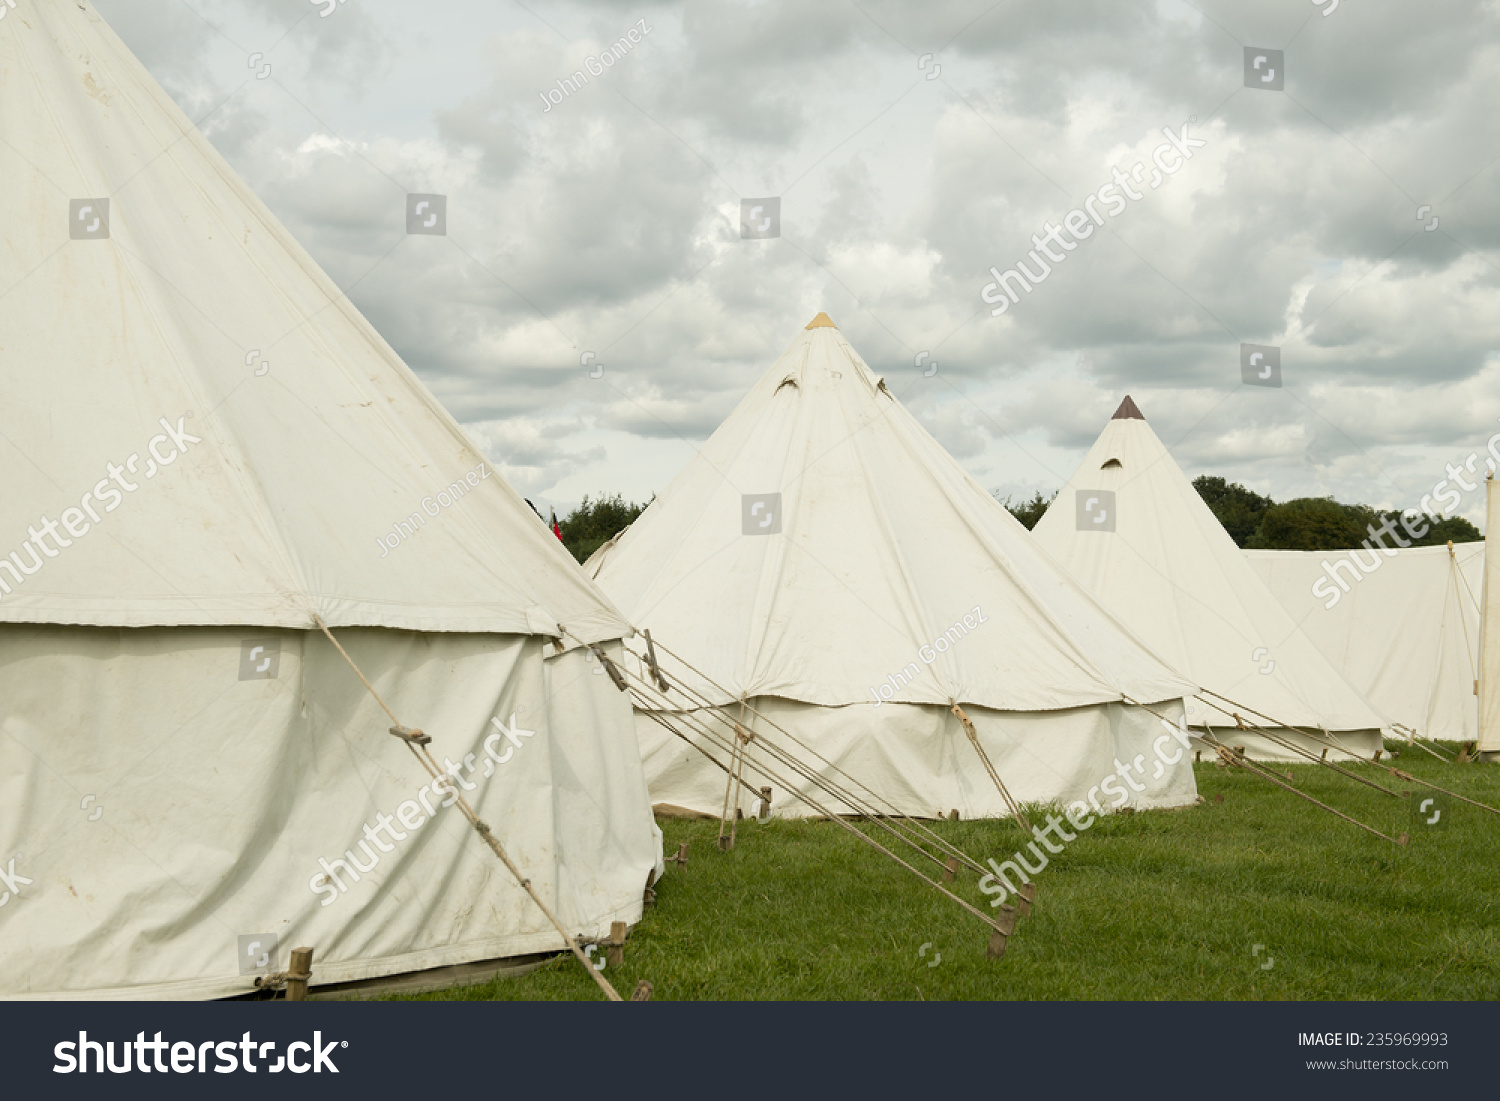 Old Style Military Tents : old style tent - memphite.com